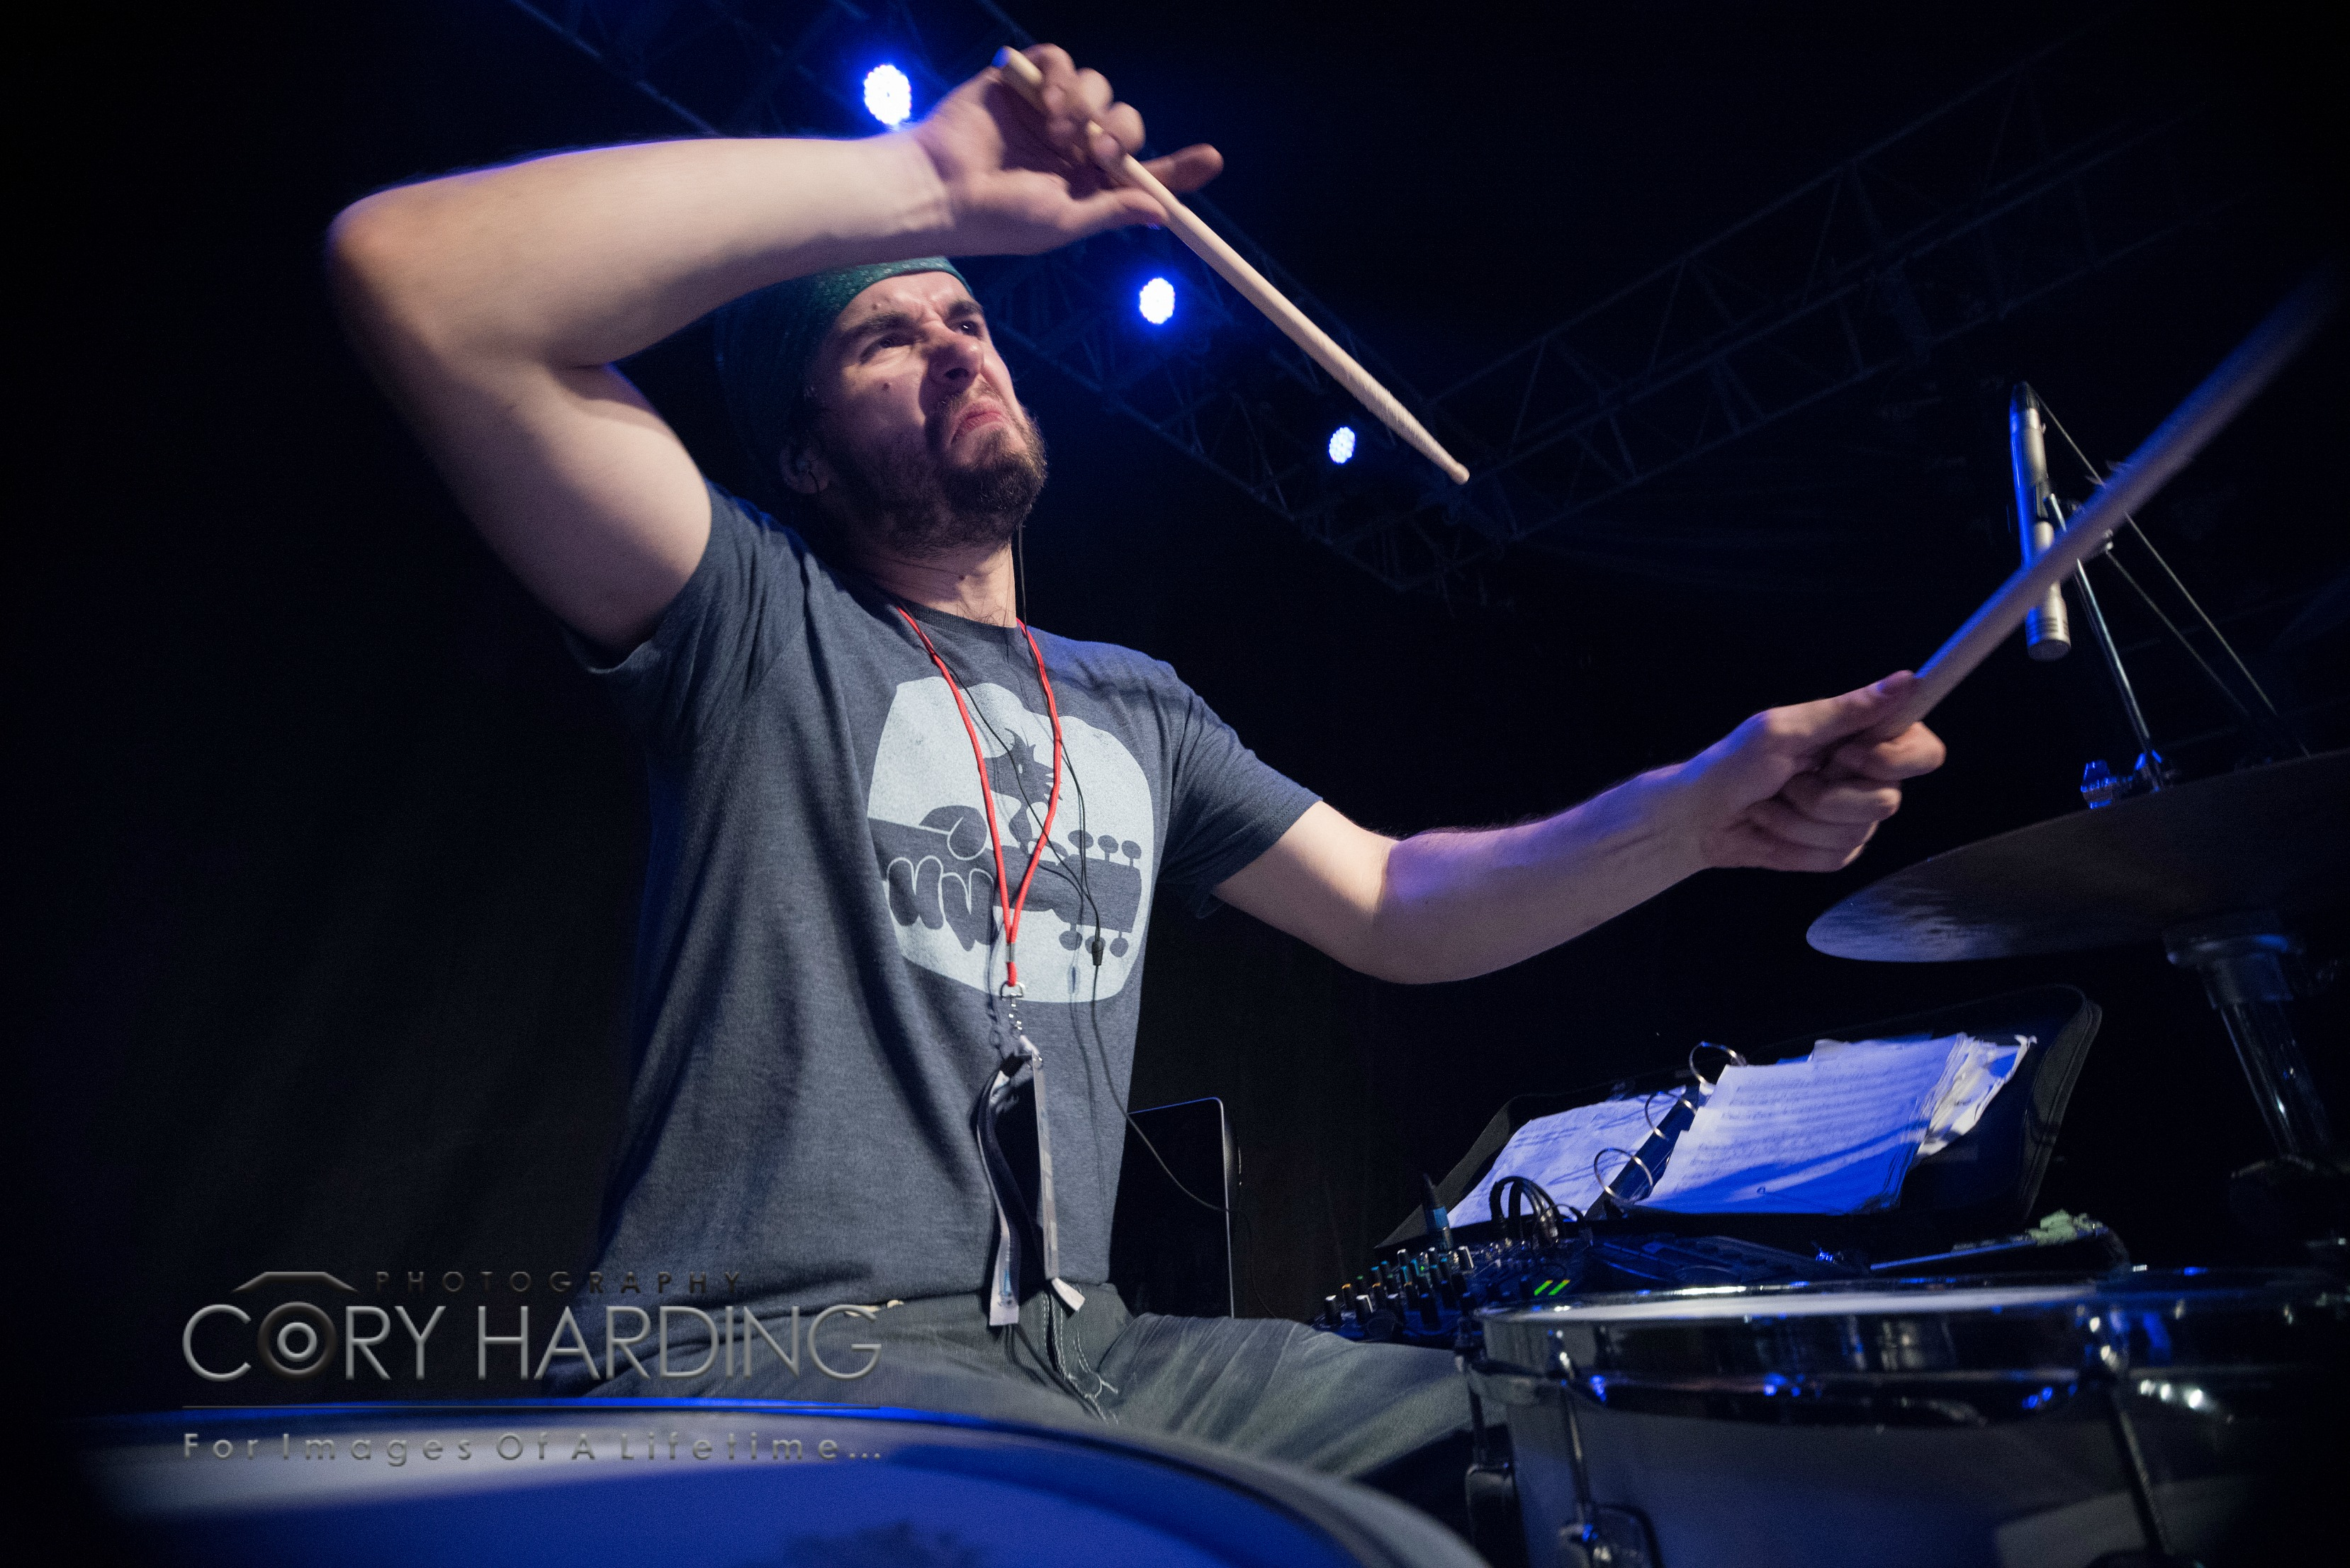 Dan Levasseur live at Tail Creek Festival-Canada-Beier 1.5 Steel-6.5 x 14. Cory Harding Photography-